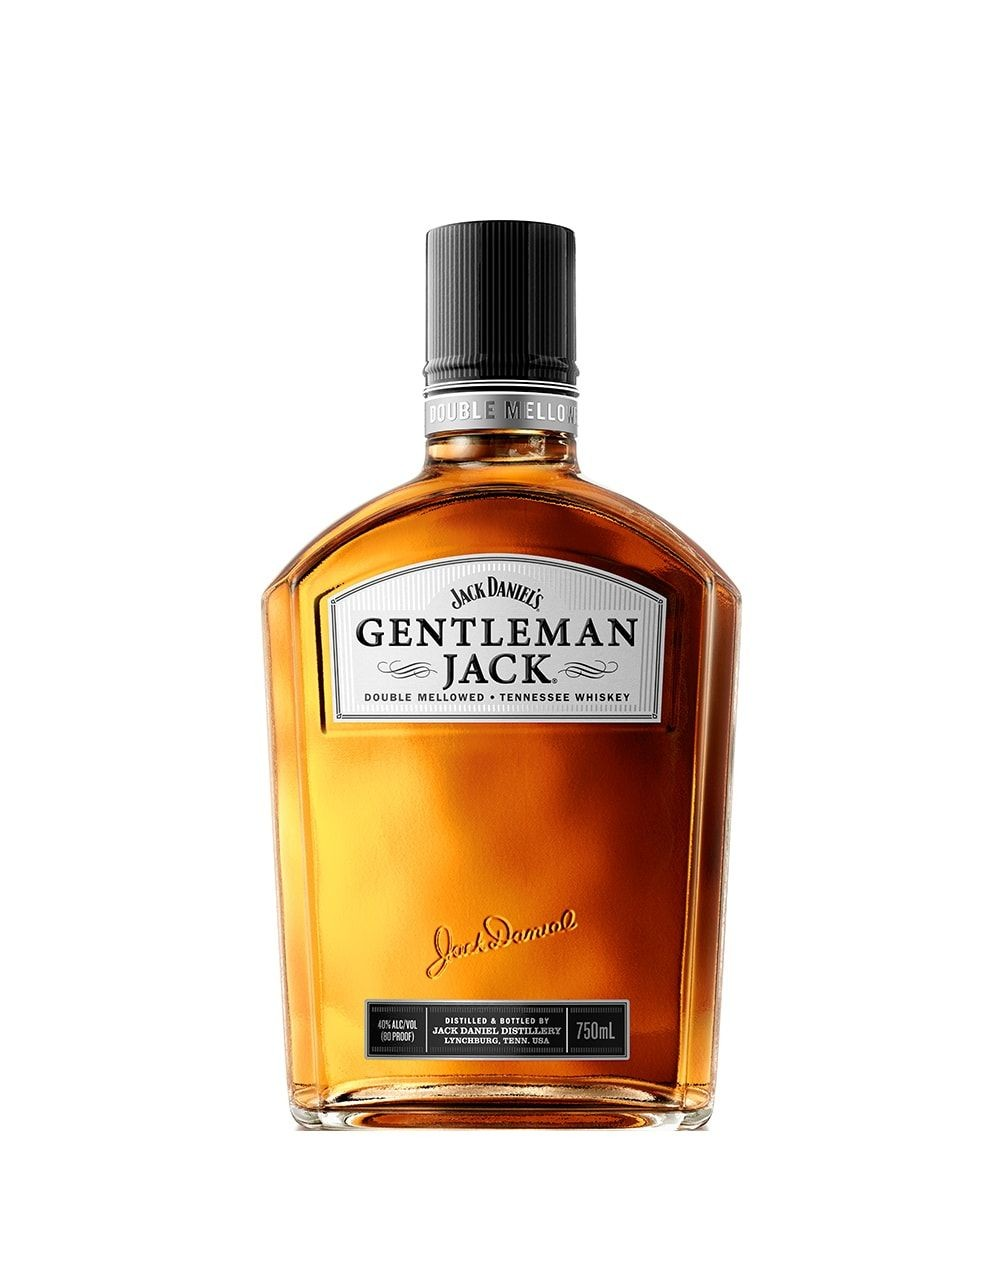 gentleman jack double mellowed tennessee whiskey buy online or